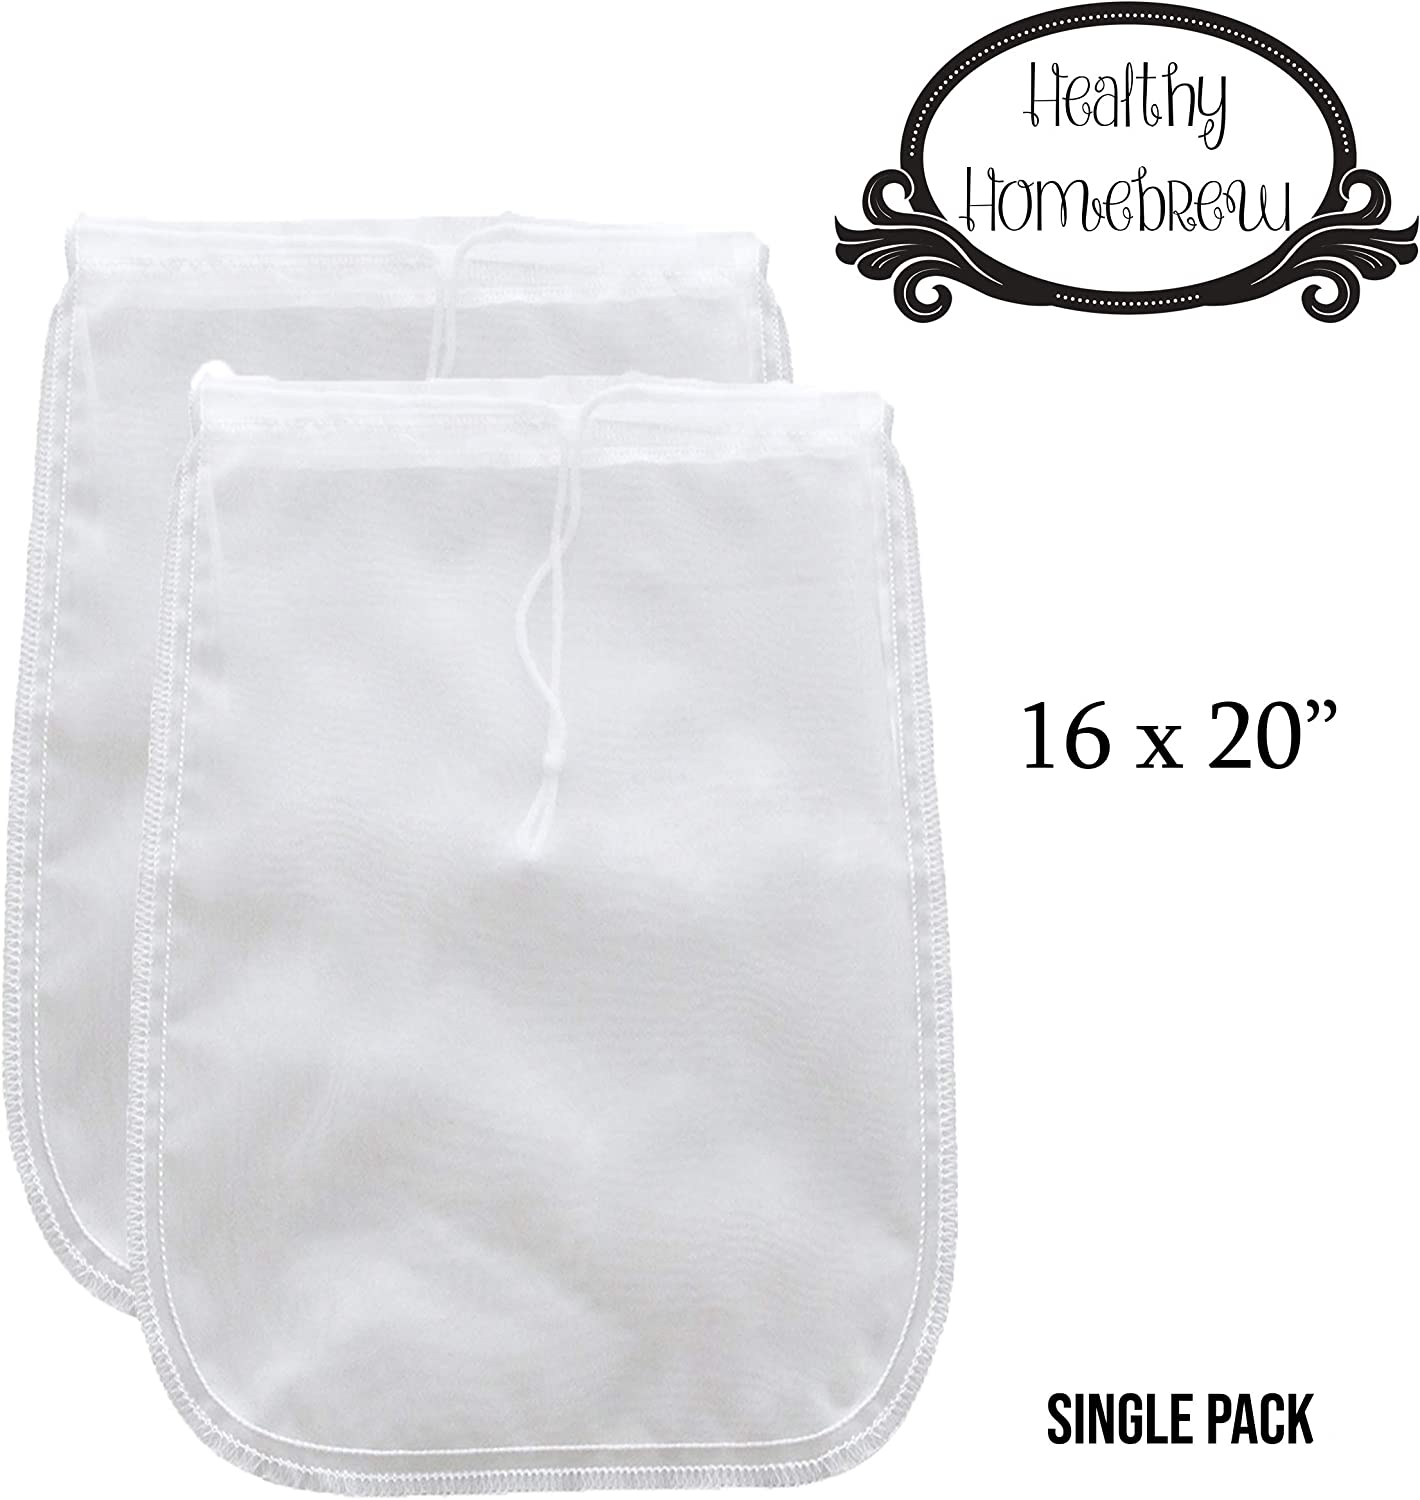 """Mesh Strainer Bags for Almond, Cashew Nut Milks, Cold Brew Coffee, Homemade Greek Yogurt, Juicing, Home brewing – Reusable Extra Fine Nylon Extraction Sack (Single Pack - 16x20"""" - XL)"""